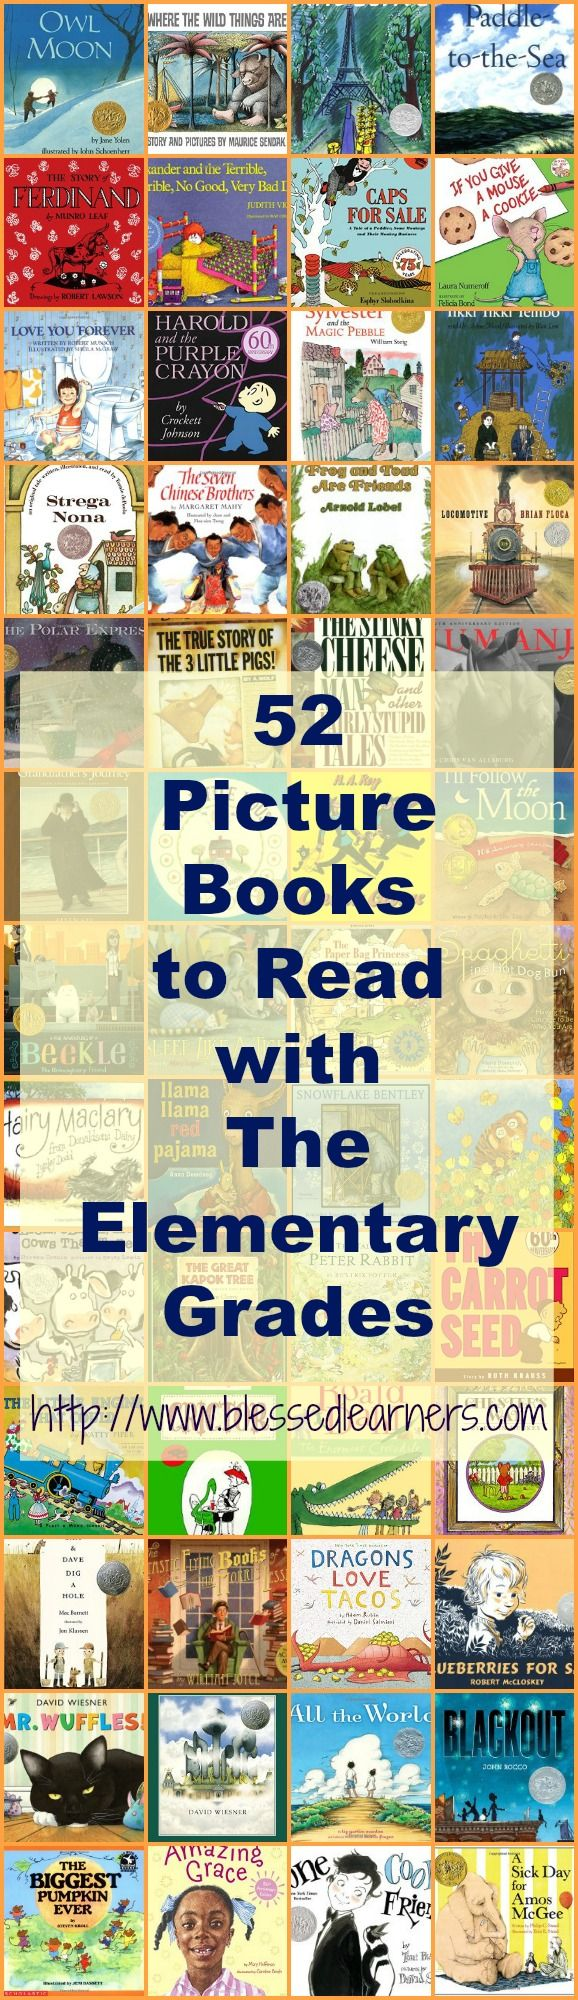 52 Picture Books To Read With The Elementary Grades